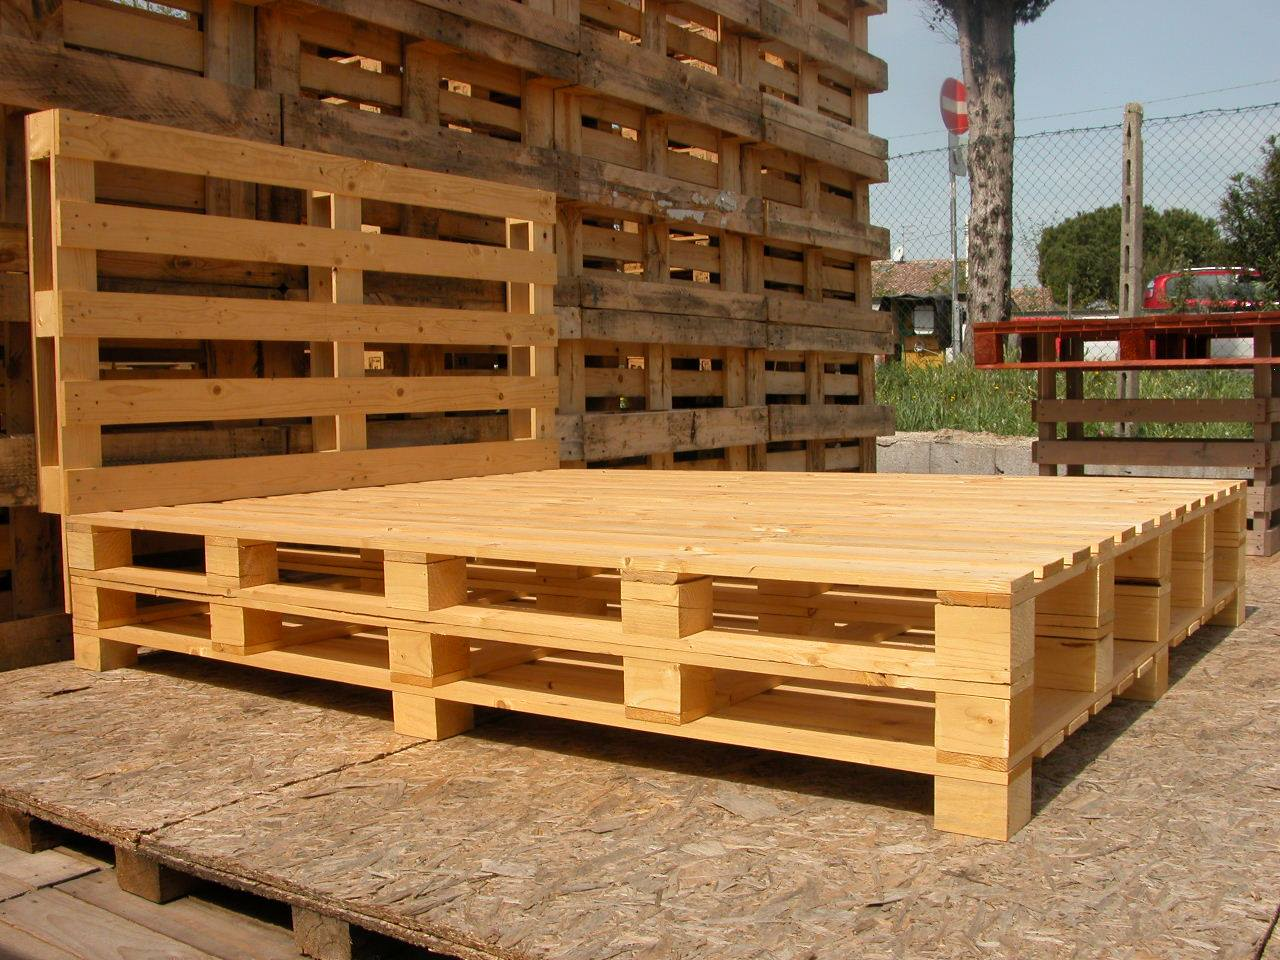 Letto in pallet 2 piazze piedi bassi mobili in pallet - Letto singolo pallet ...